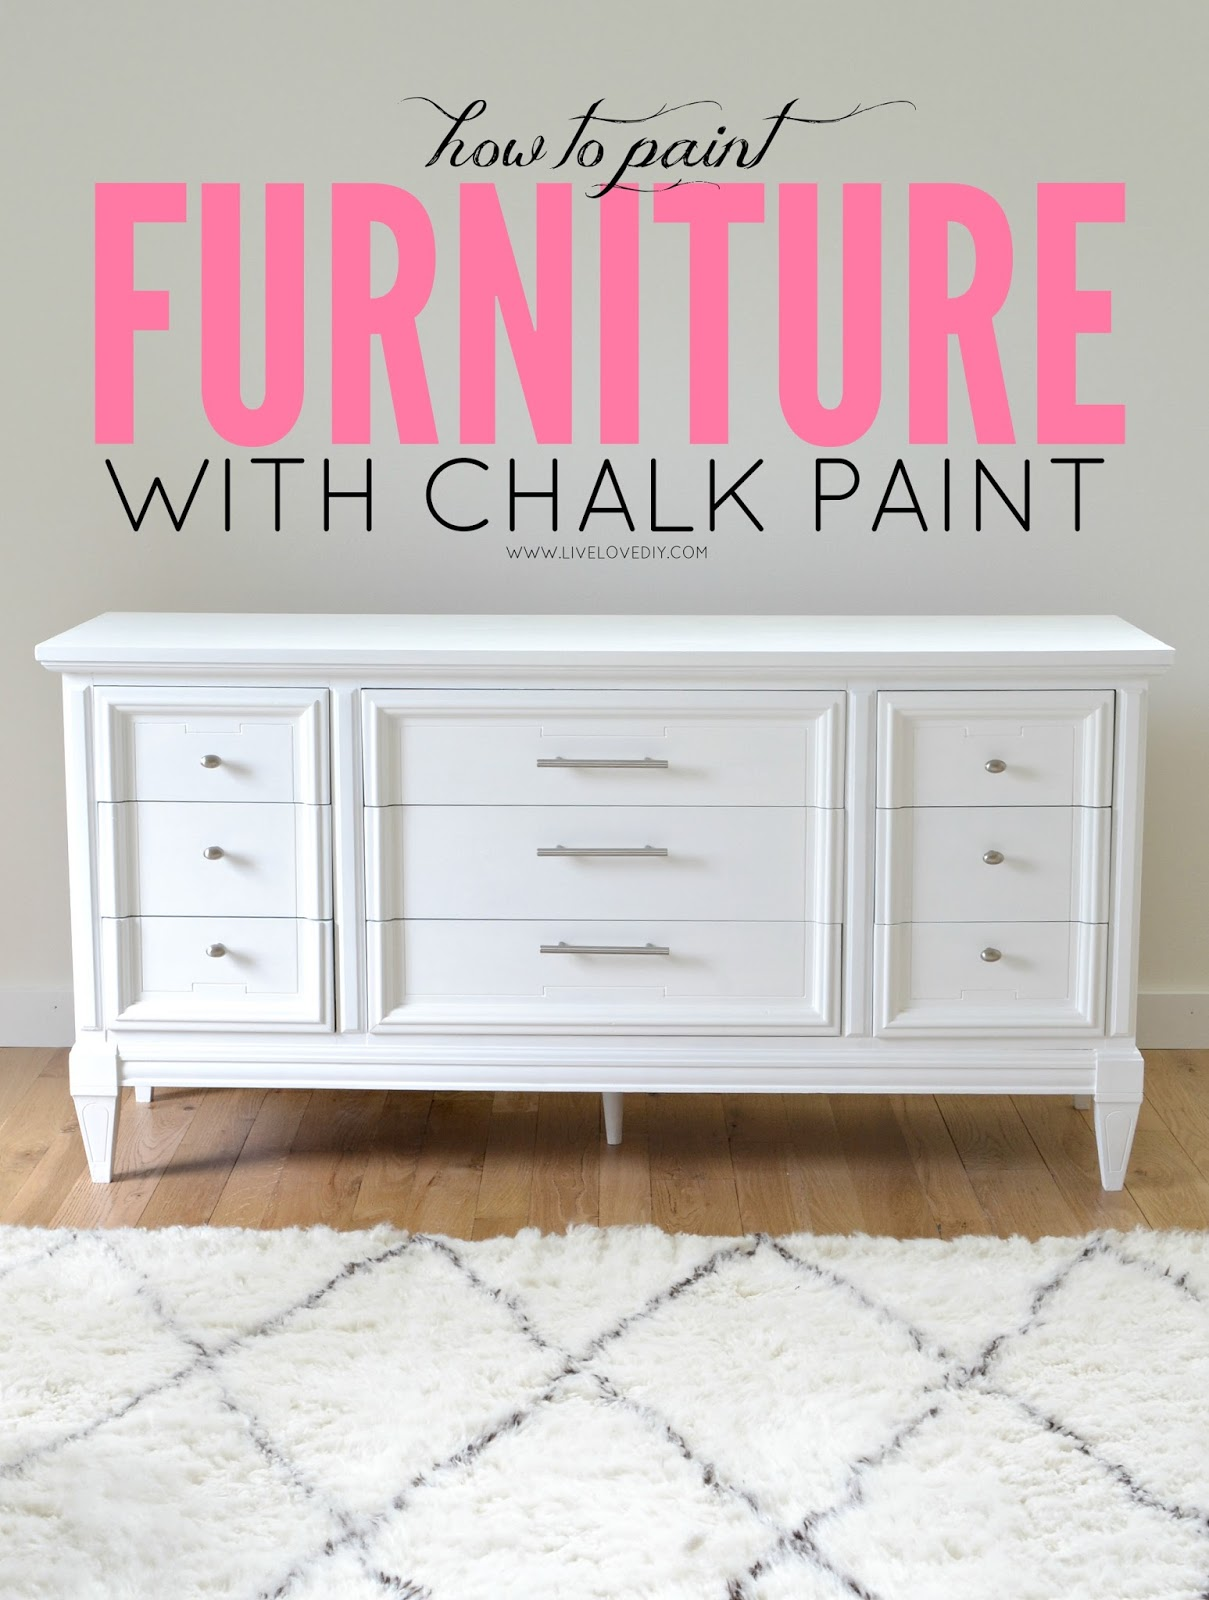 Merveilleux How To Paint Furniture With Chalk Paint (and How To Survive A DIY Disaster)